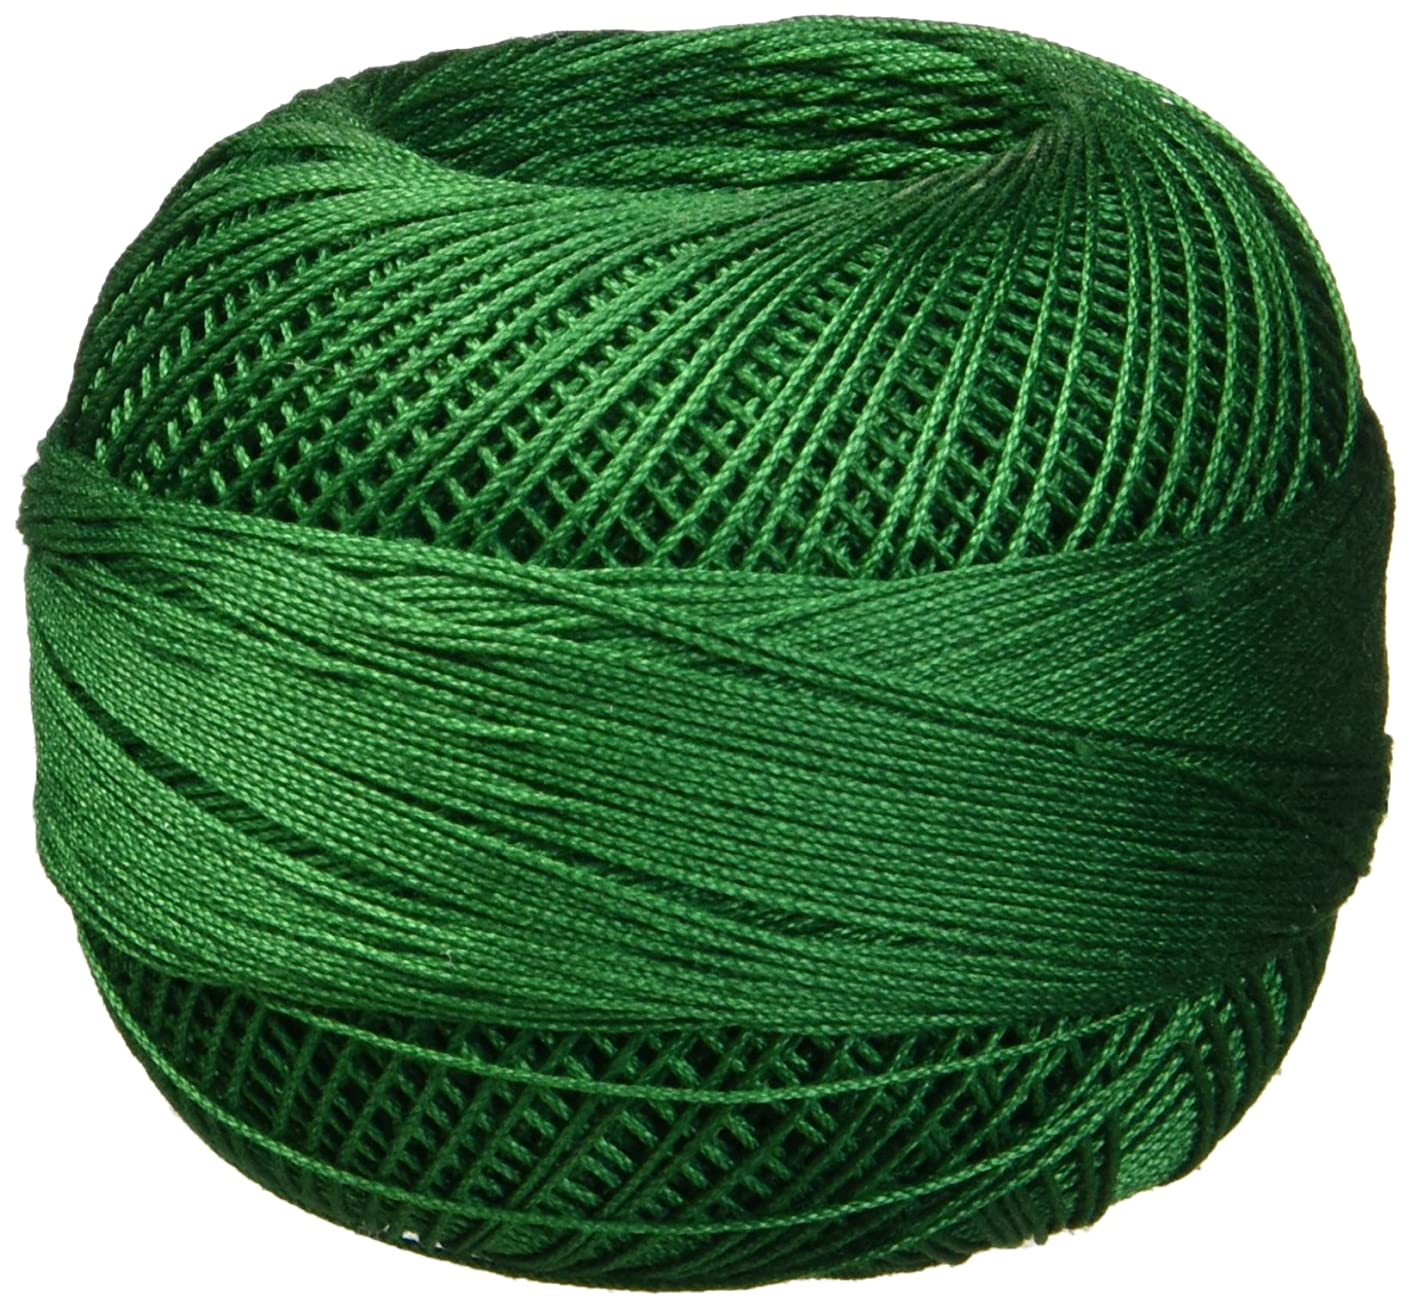 Handy Hands Lizbeth Egyptian Cotton Crochet Thread, Tatting Thread, and Knitting Thread Lace Size 20 (25 Grams 210 Yards) – HH20638 (Christmas Green)